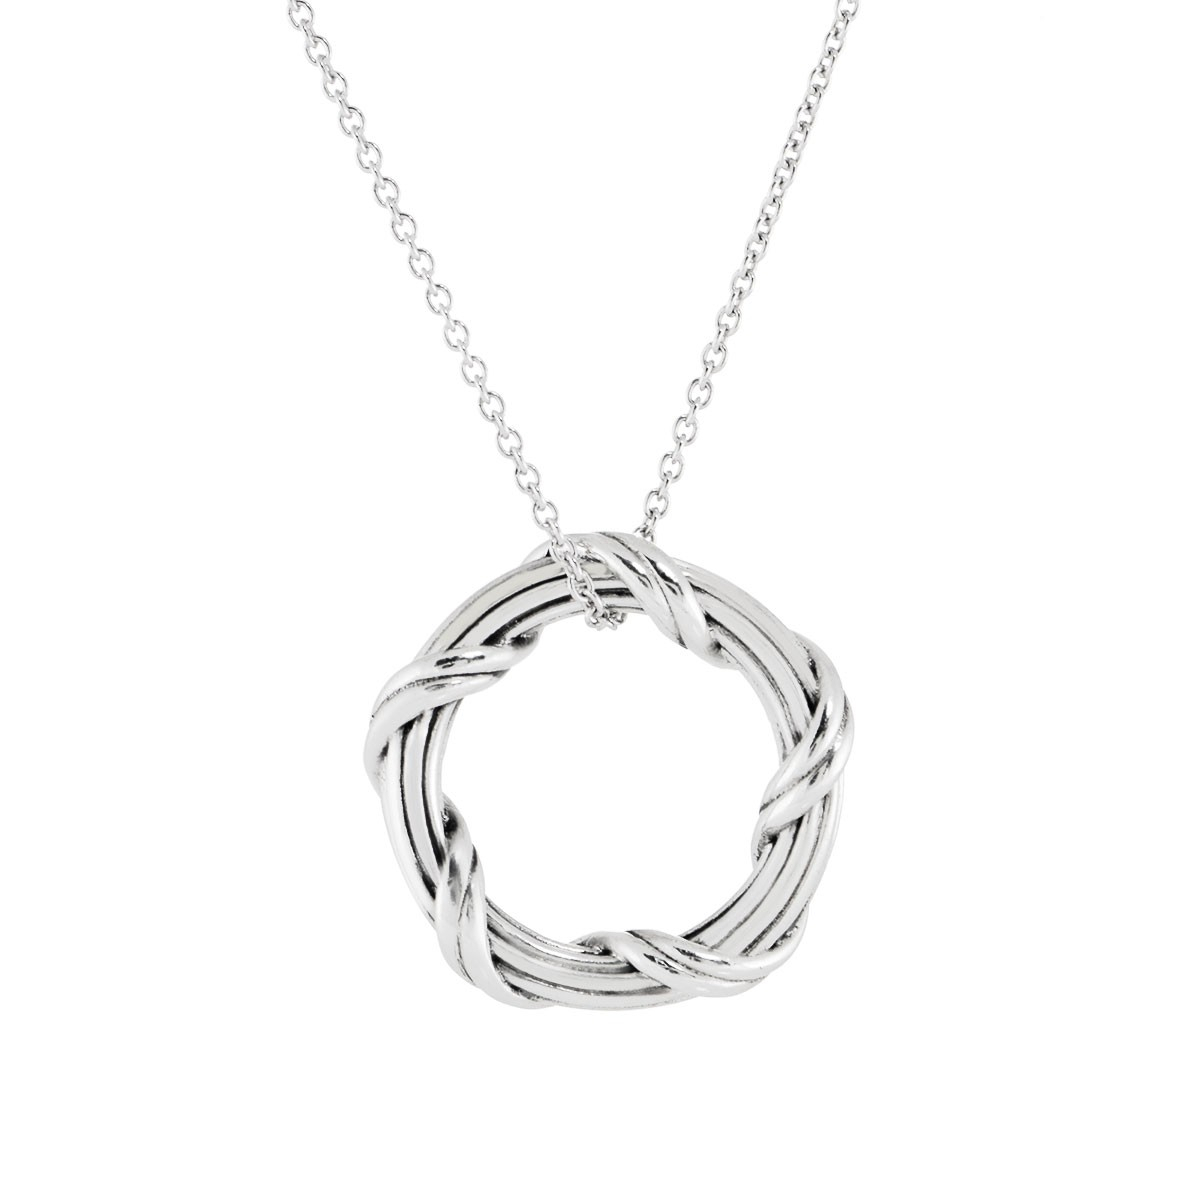 Ribbon & Reed Signature Classic Circle Pendant Necklace In Sterling Intended For Most Recent Ribbon Open Heart Necklaces (Gallery 24 of 25)